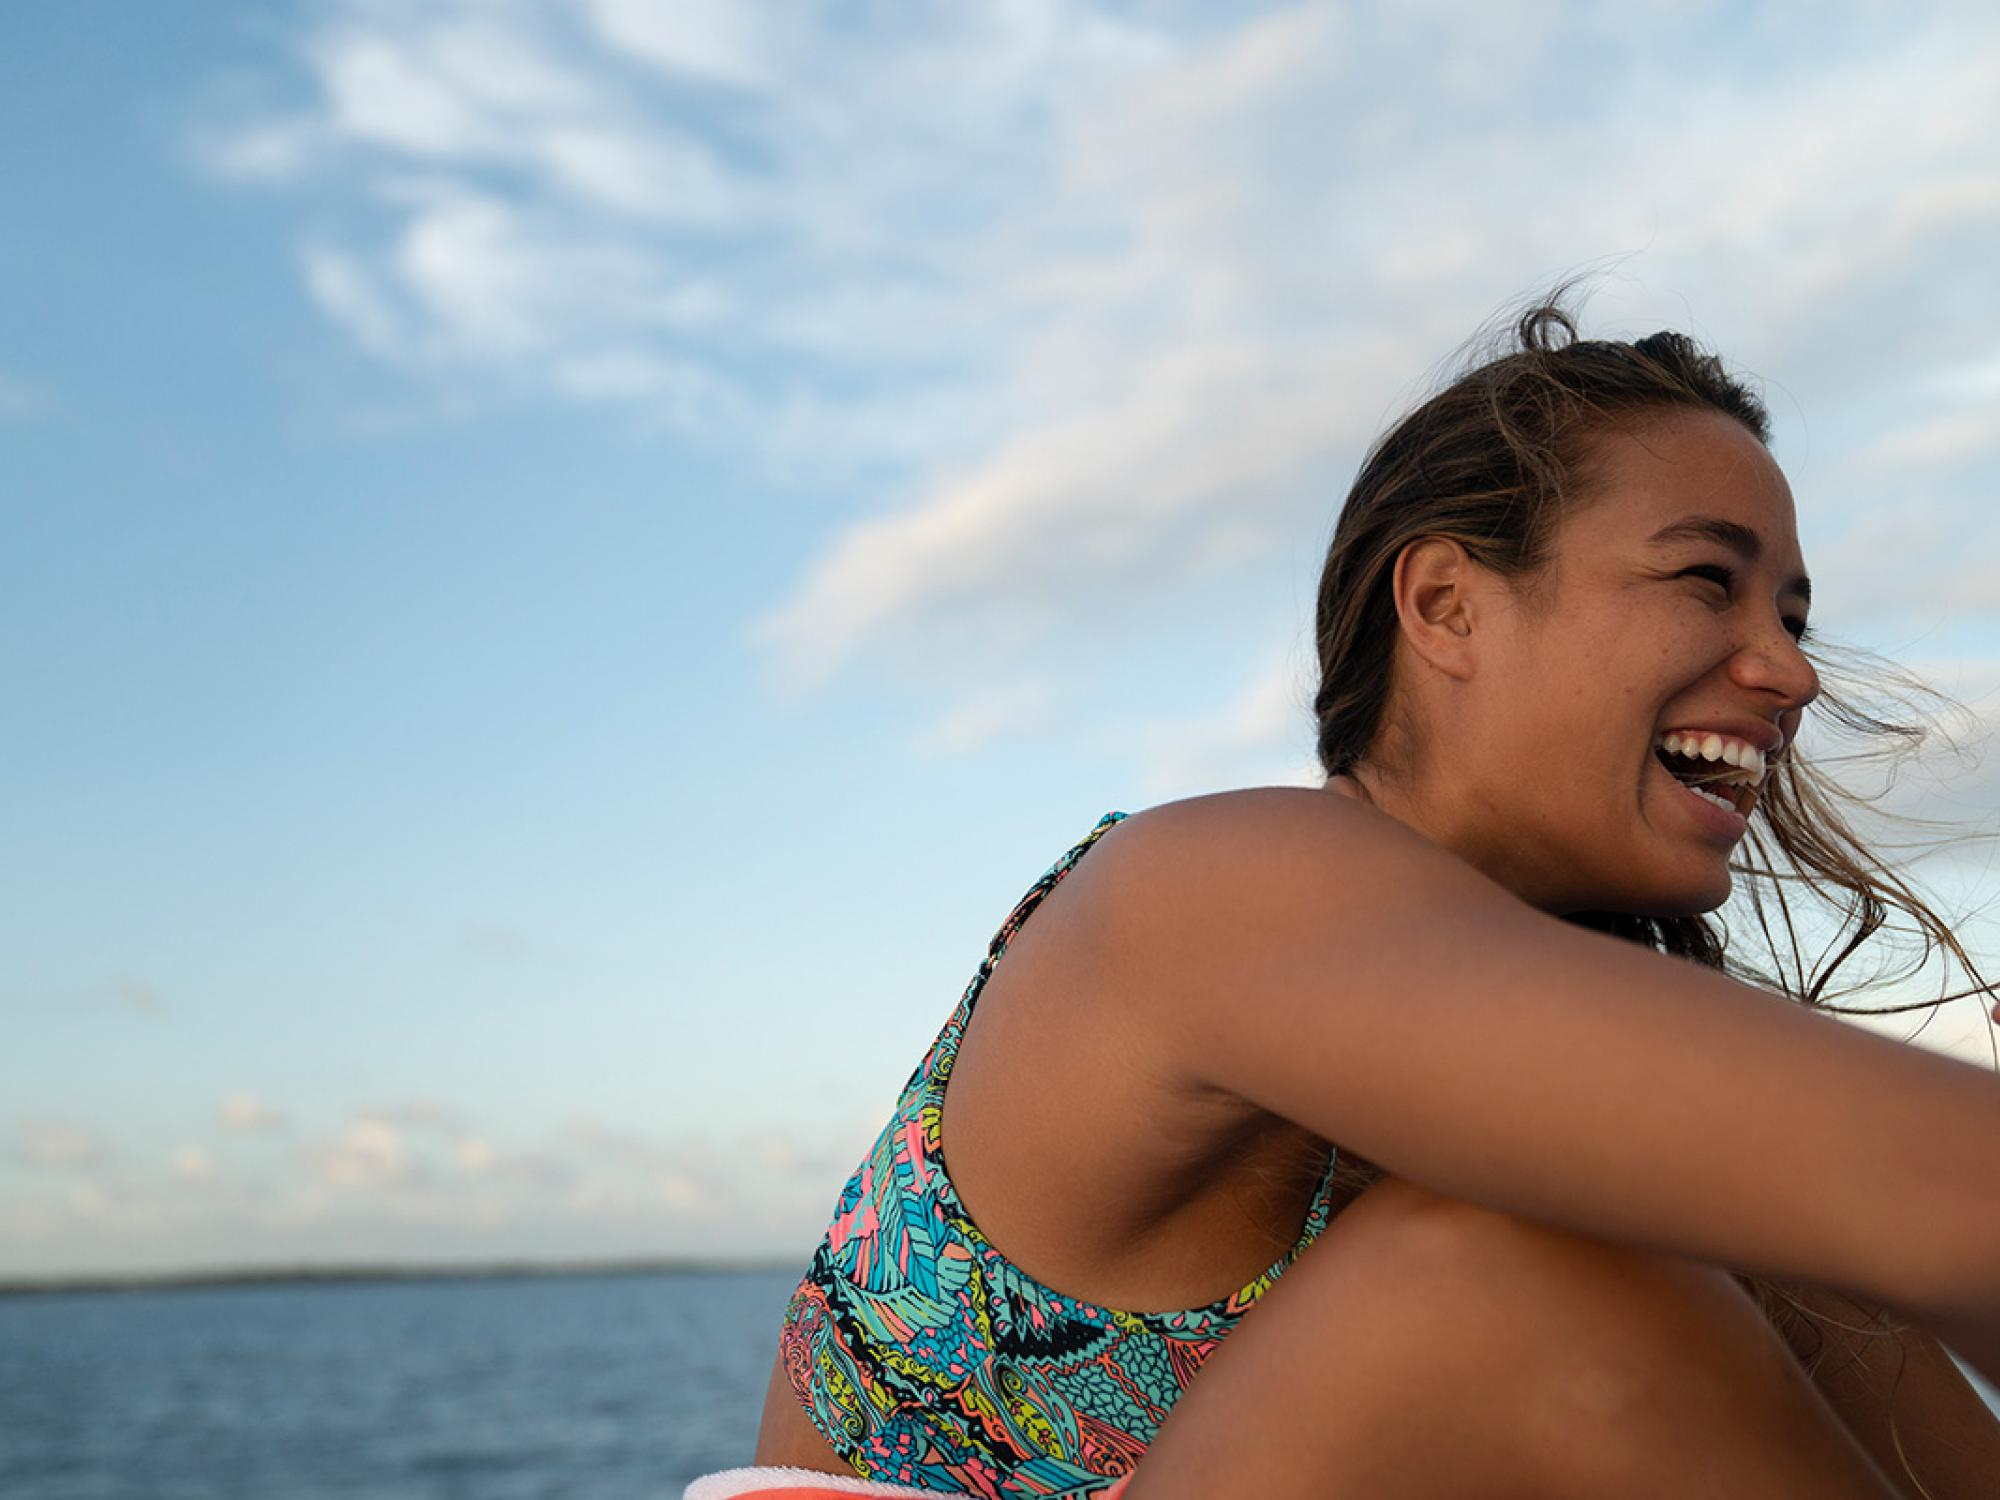 Laughing on the boat